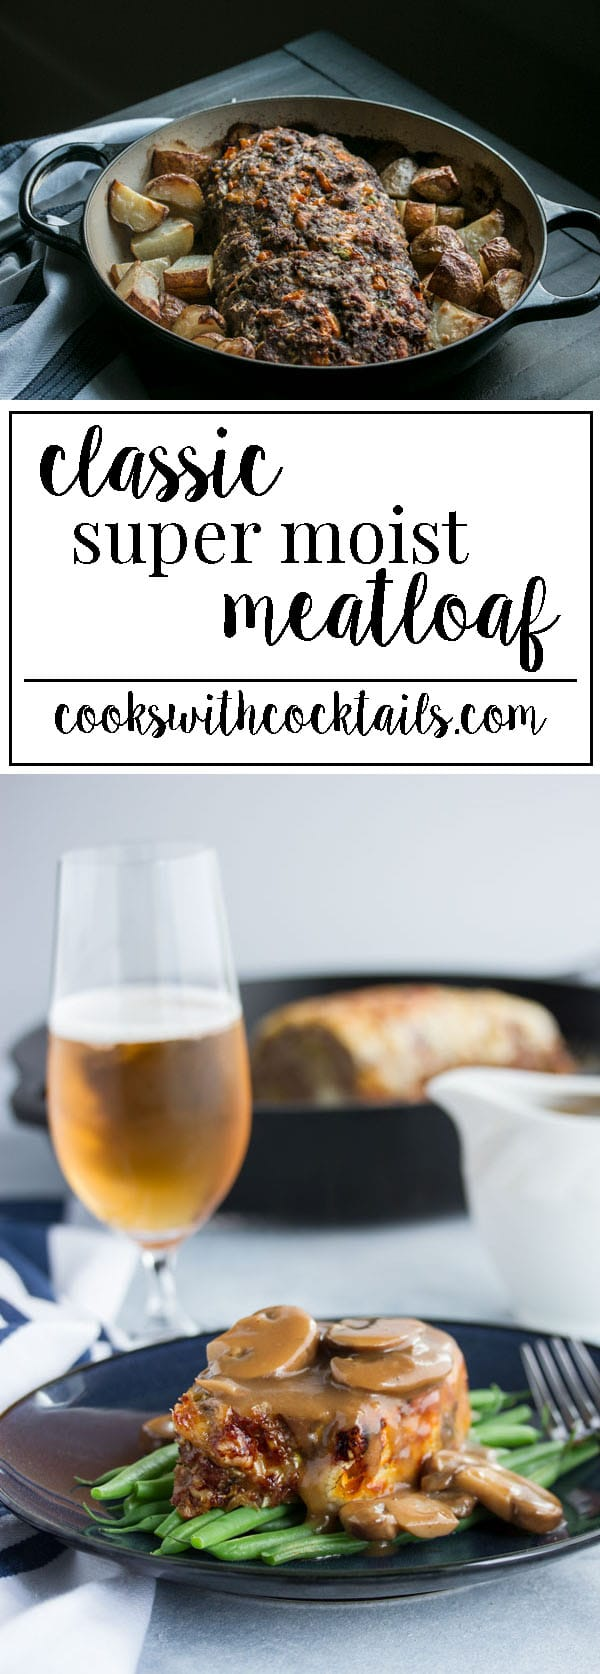 A classic easy meatloaf recipe with tons of veggies like peppers and zucchini, and a good amount of cheese that's quick and easy enough for weeknight dinner but tasty enough to serve to guests.  Could even be made into meatloaf muffins. #meatloaf #comfortfood #beefmeatloaf #meatloafrecipe